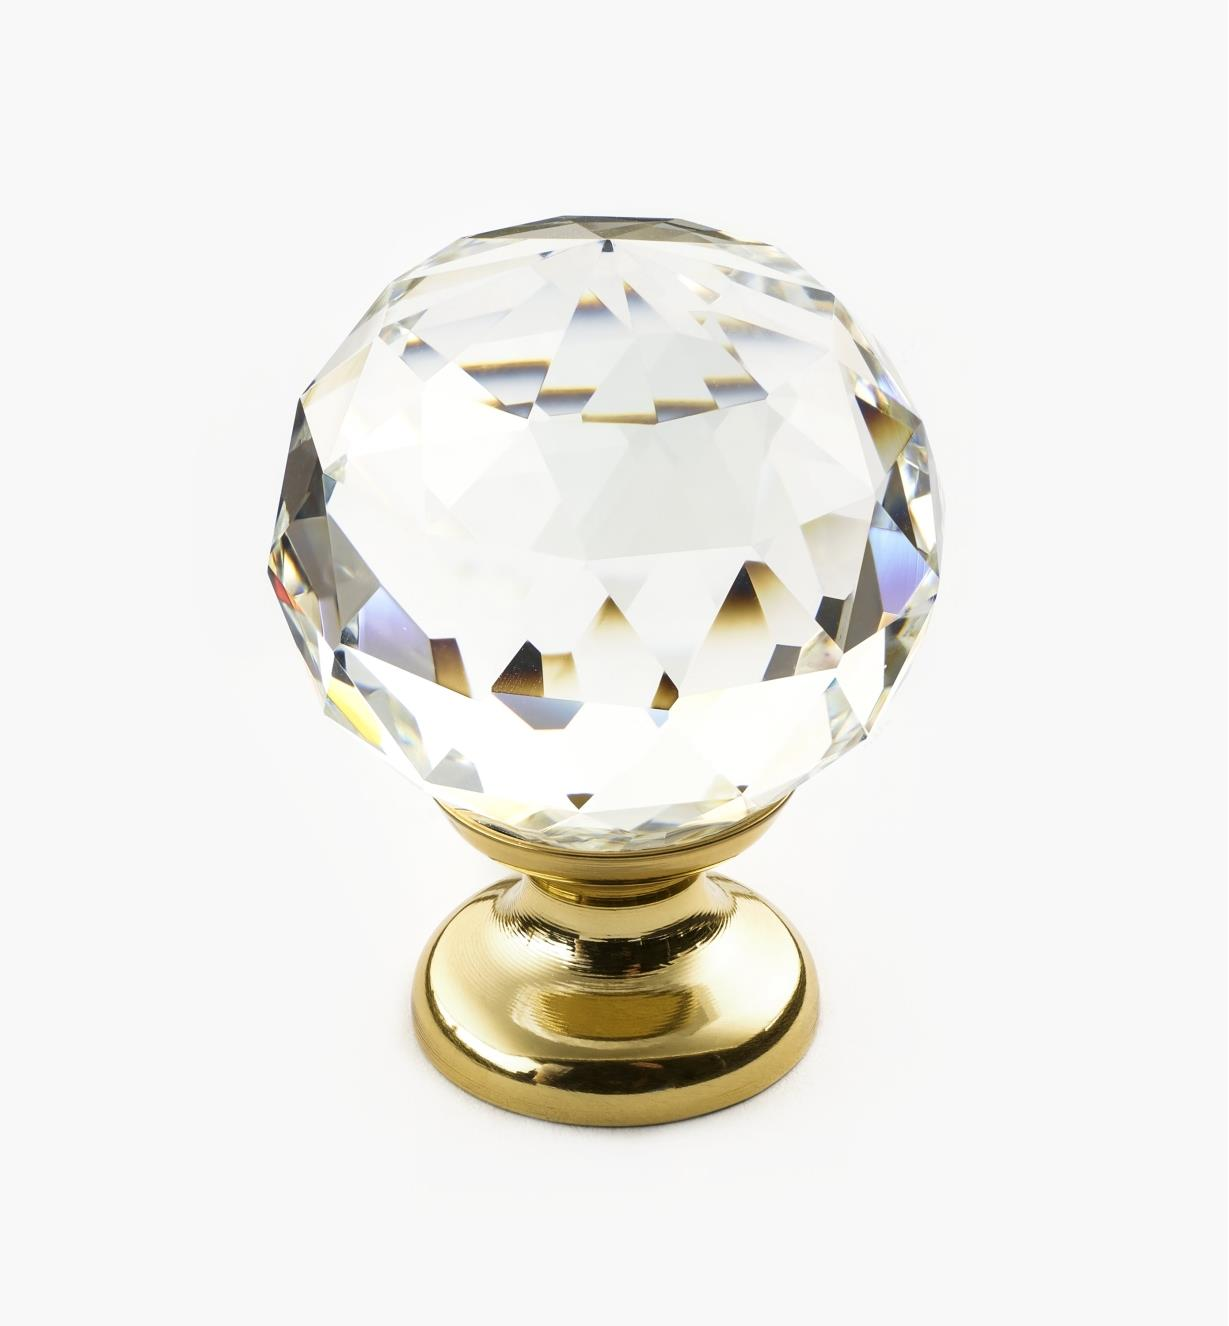 01A3461 - Large Faceted Glass Knob, PB